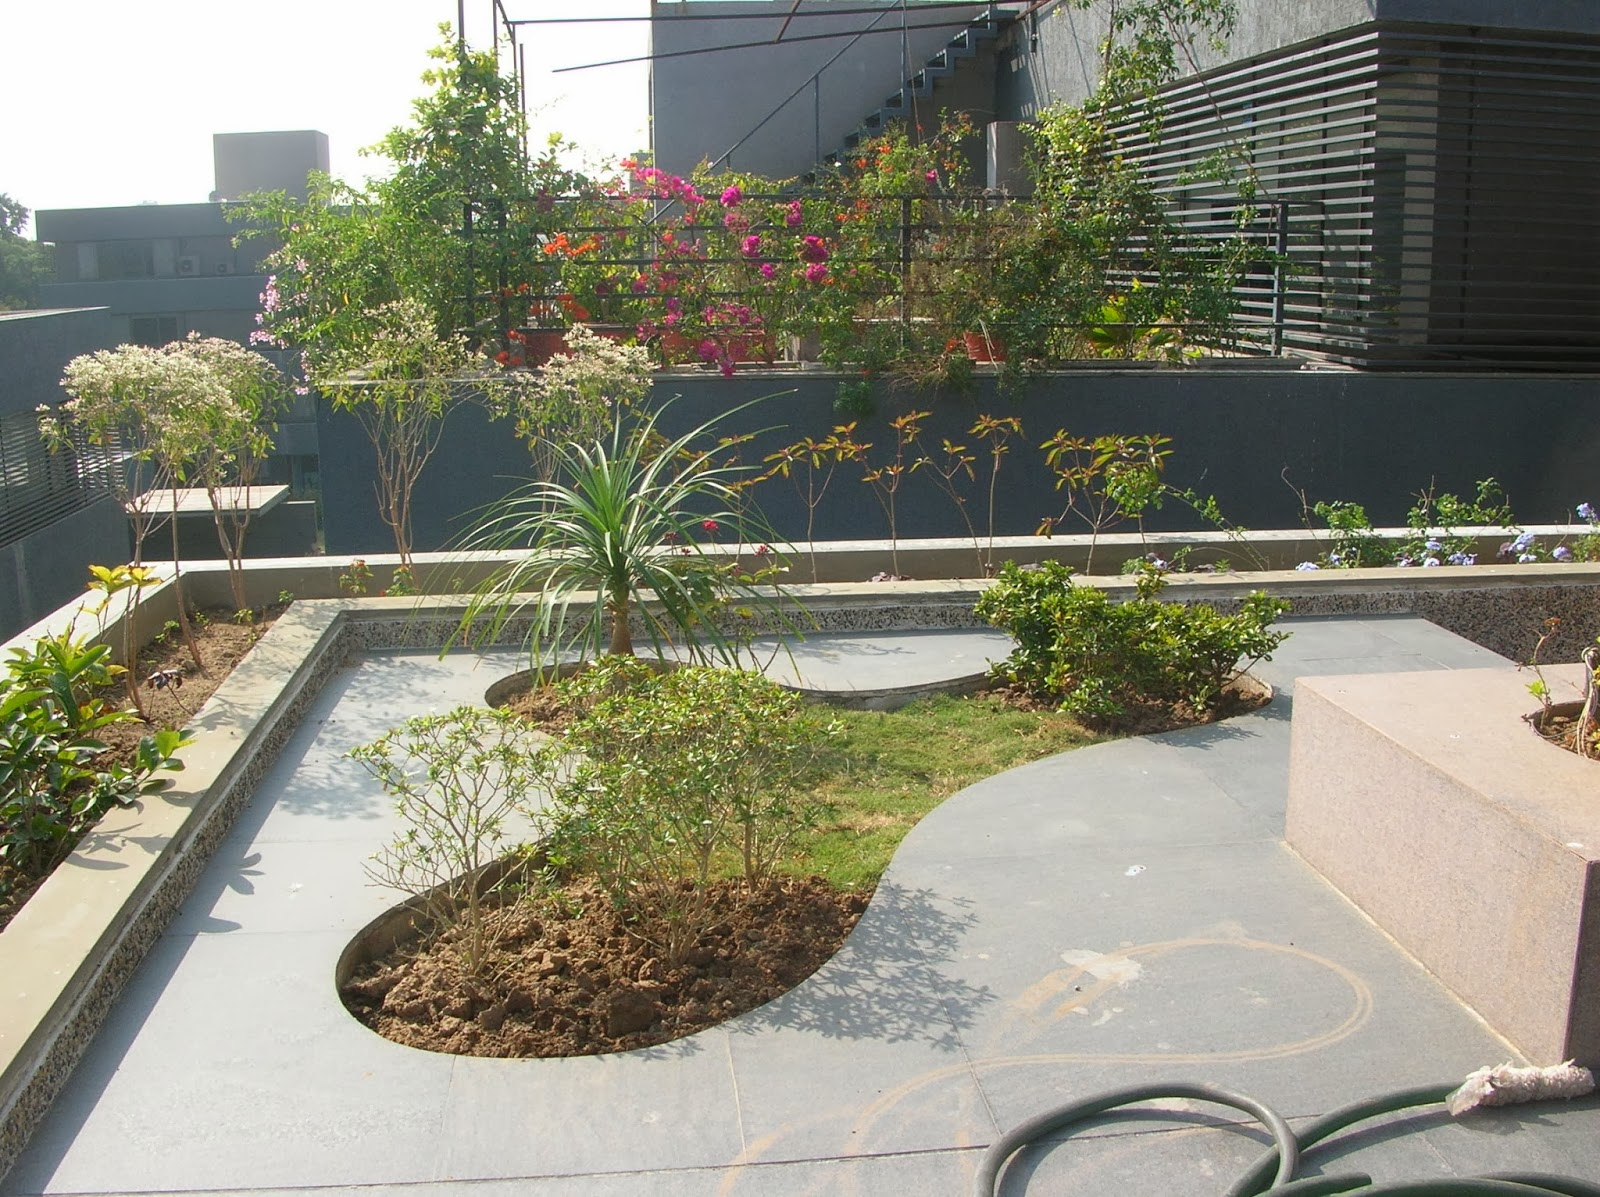 Bonsai Trees and Plants in Ahmedabad for Sale garden design services